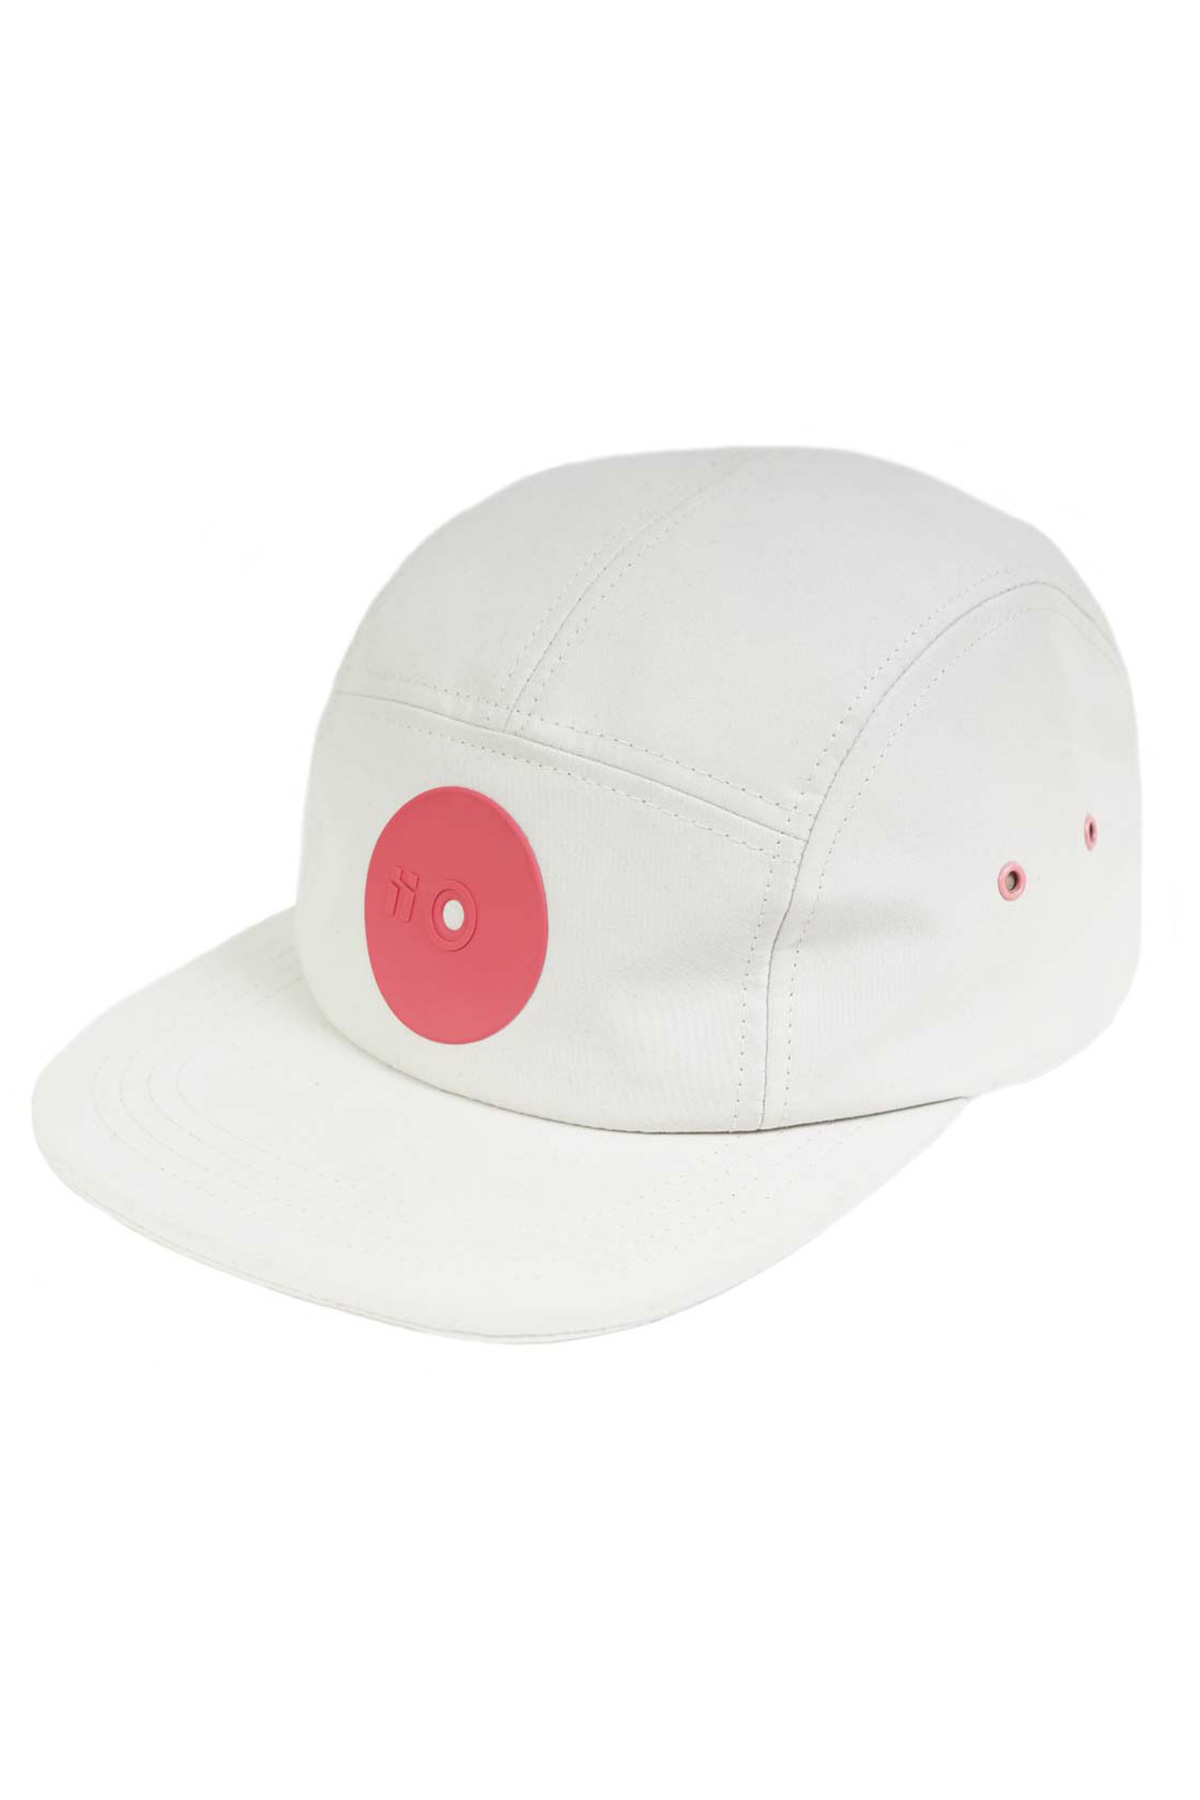 Mr. Serious PINK DOT FAT Cap